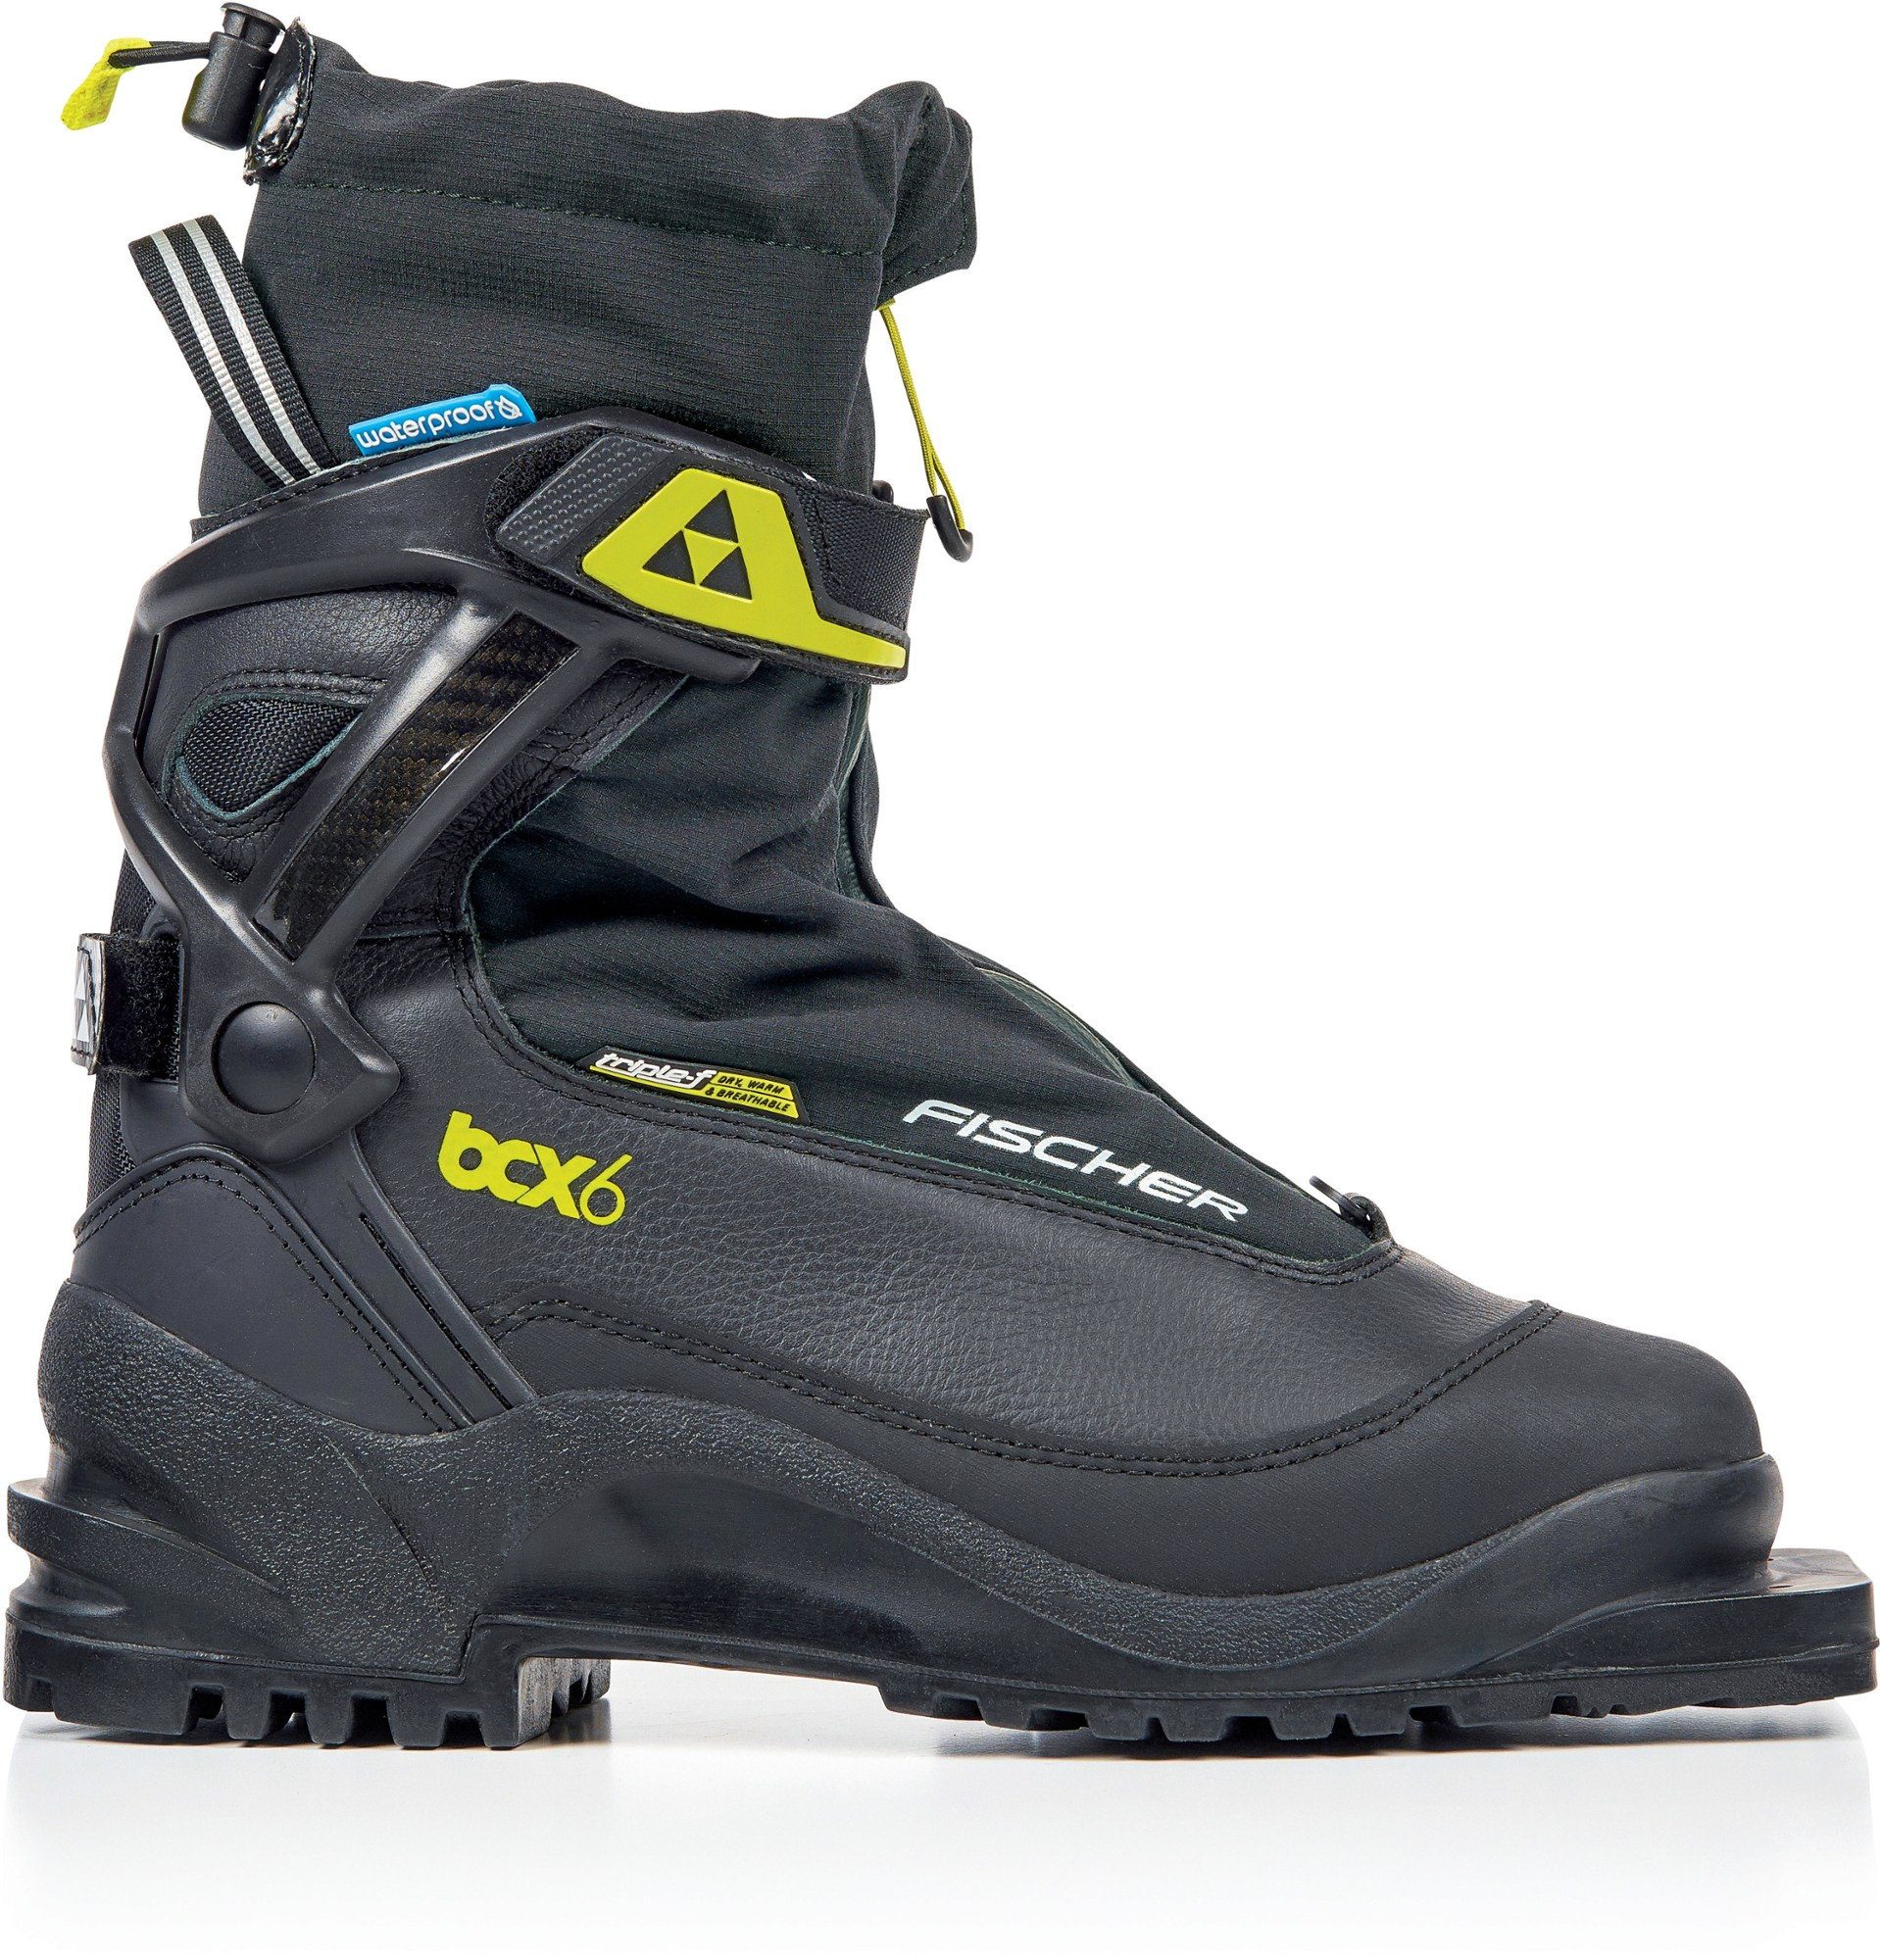 Fischer BCX 675 Waterproof 75mm Cross-Country Ski Boots - 2018/2019